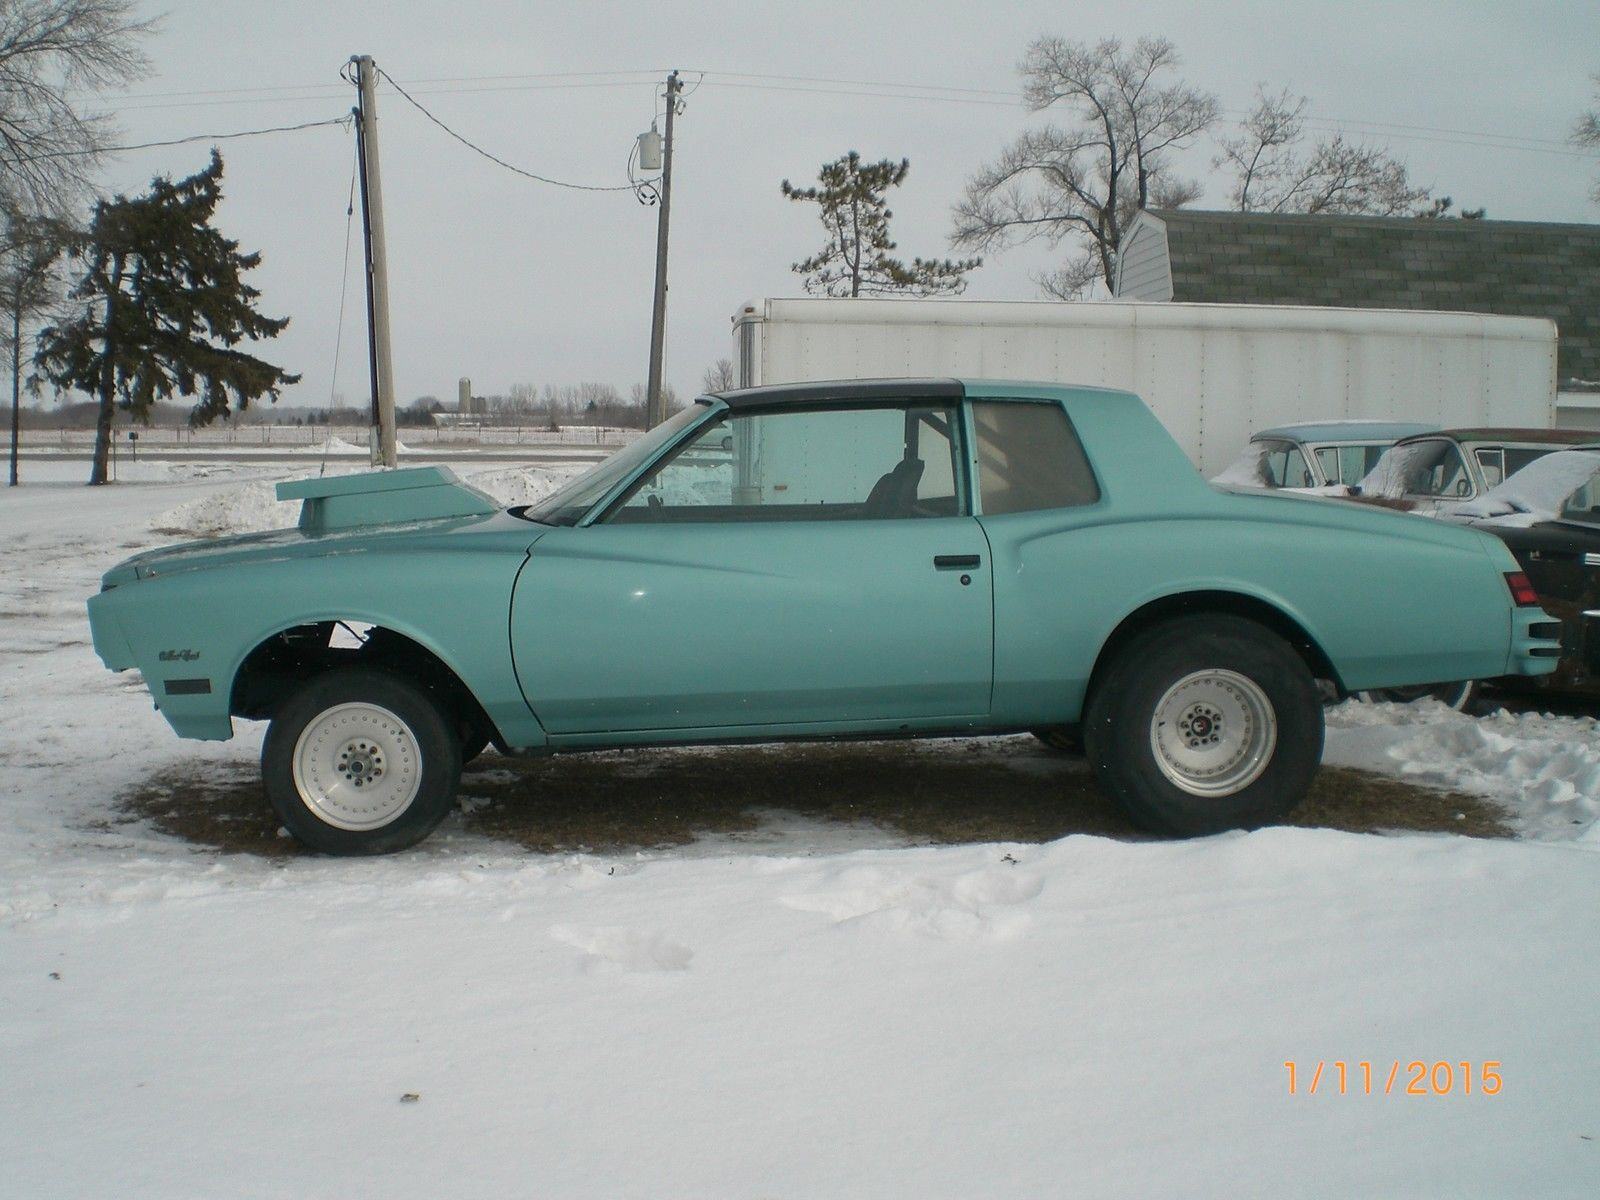 1980 monte carlo t tops set up as drag car - Classic Chevrolet Monte ...